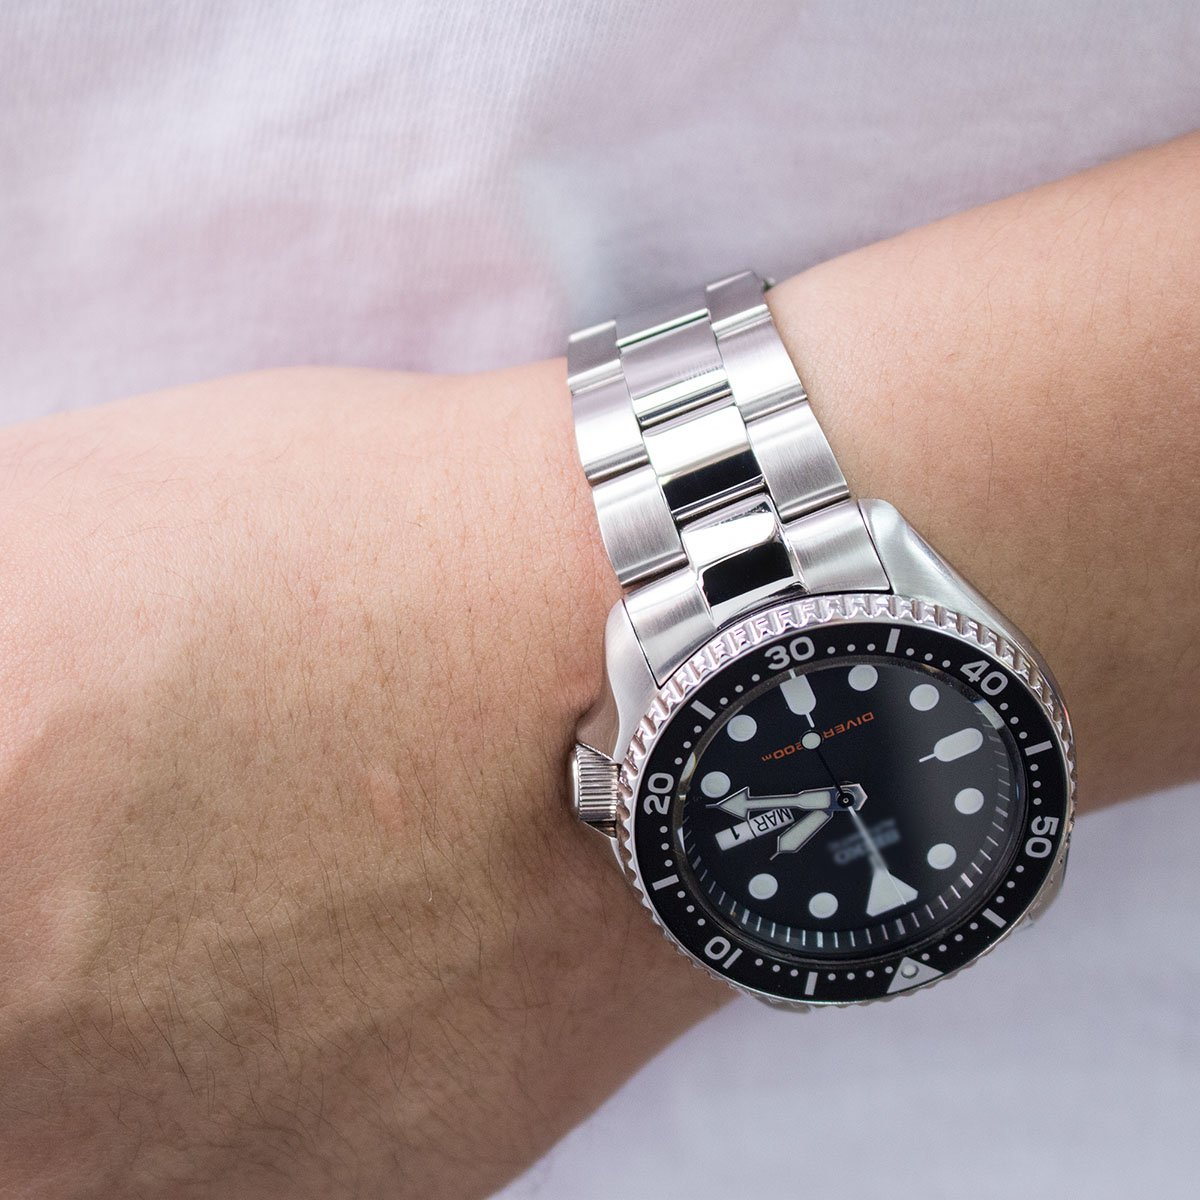 22mm Super Oyster Brushed & Polished 316L SS Watch Band for Seiko SKX007 SKX009 SKX011 by Seiko Replacement by MiLTAT (Image #2)